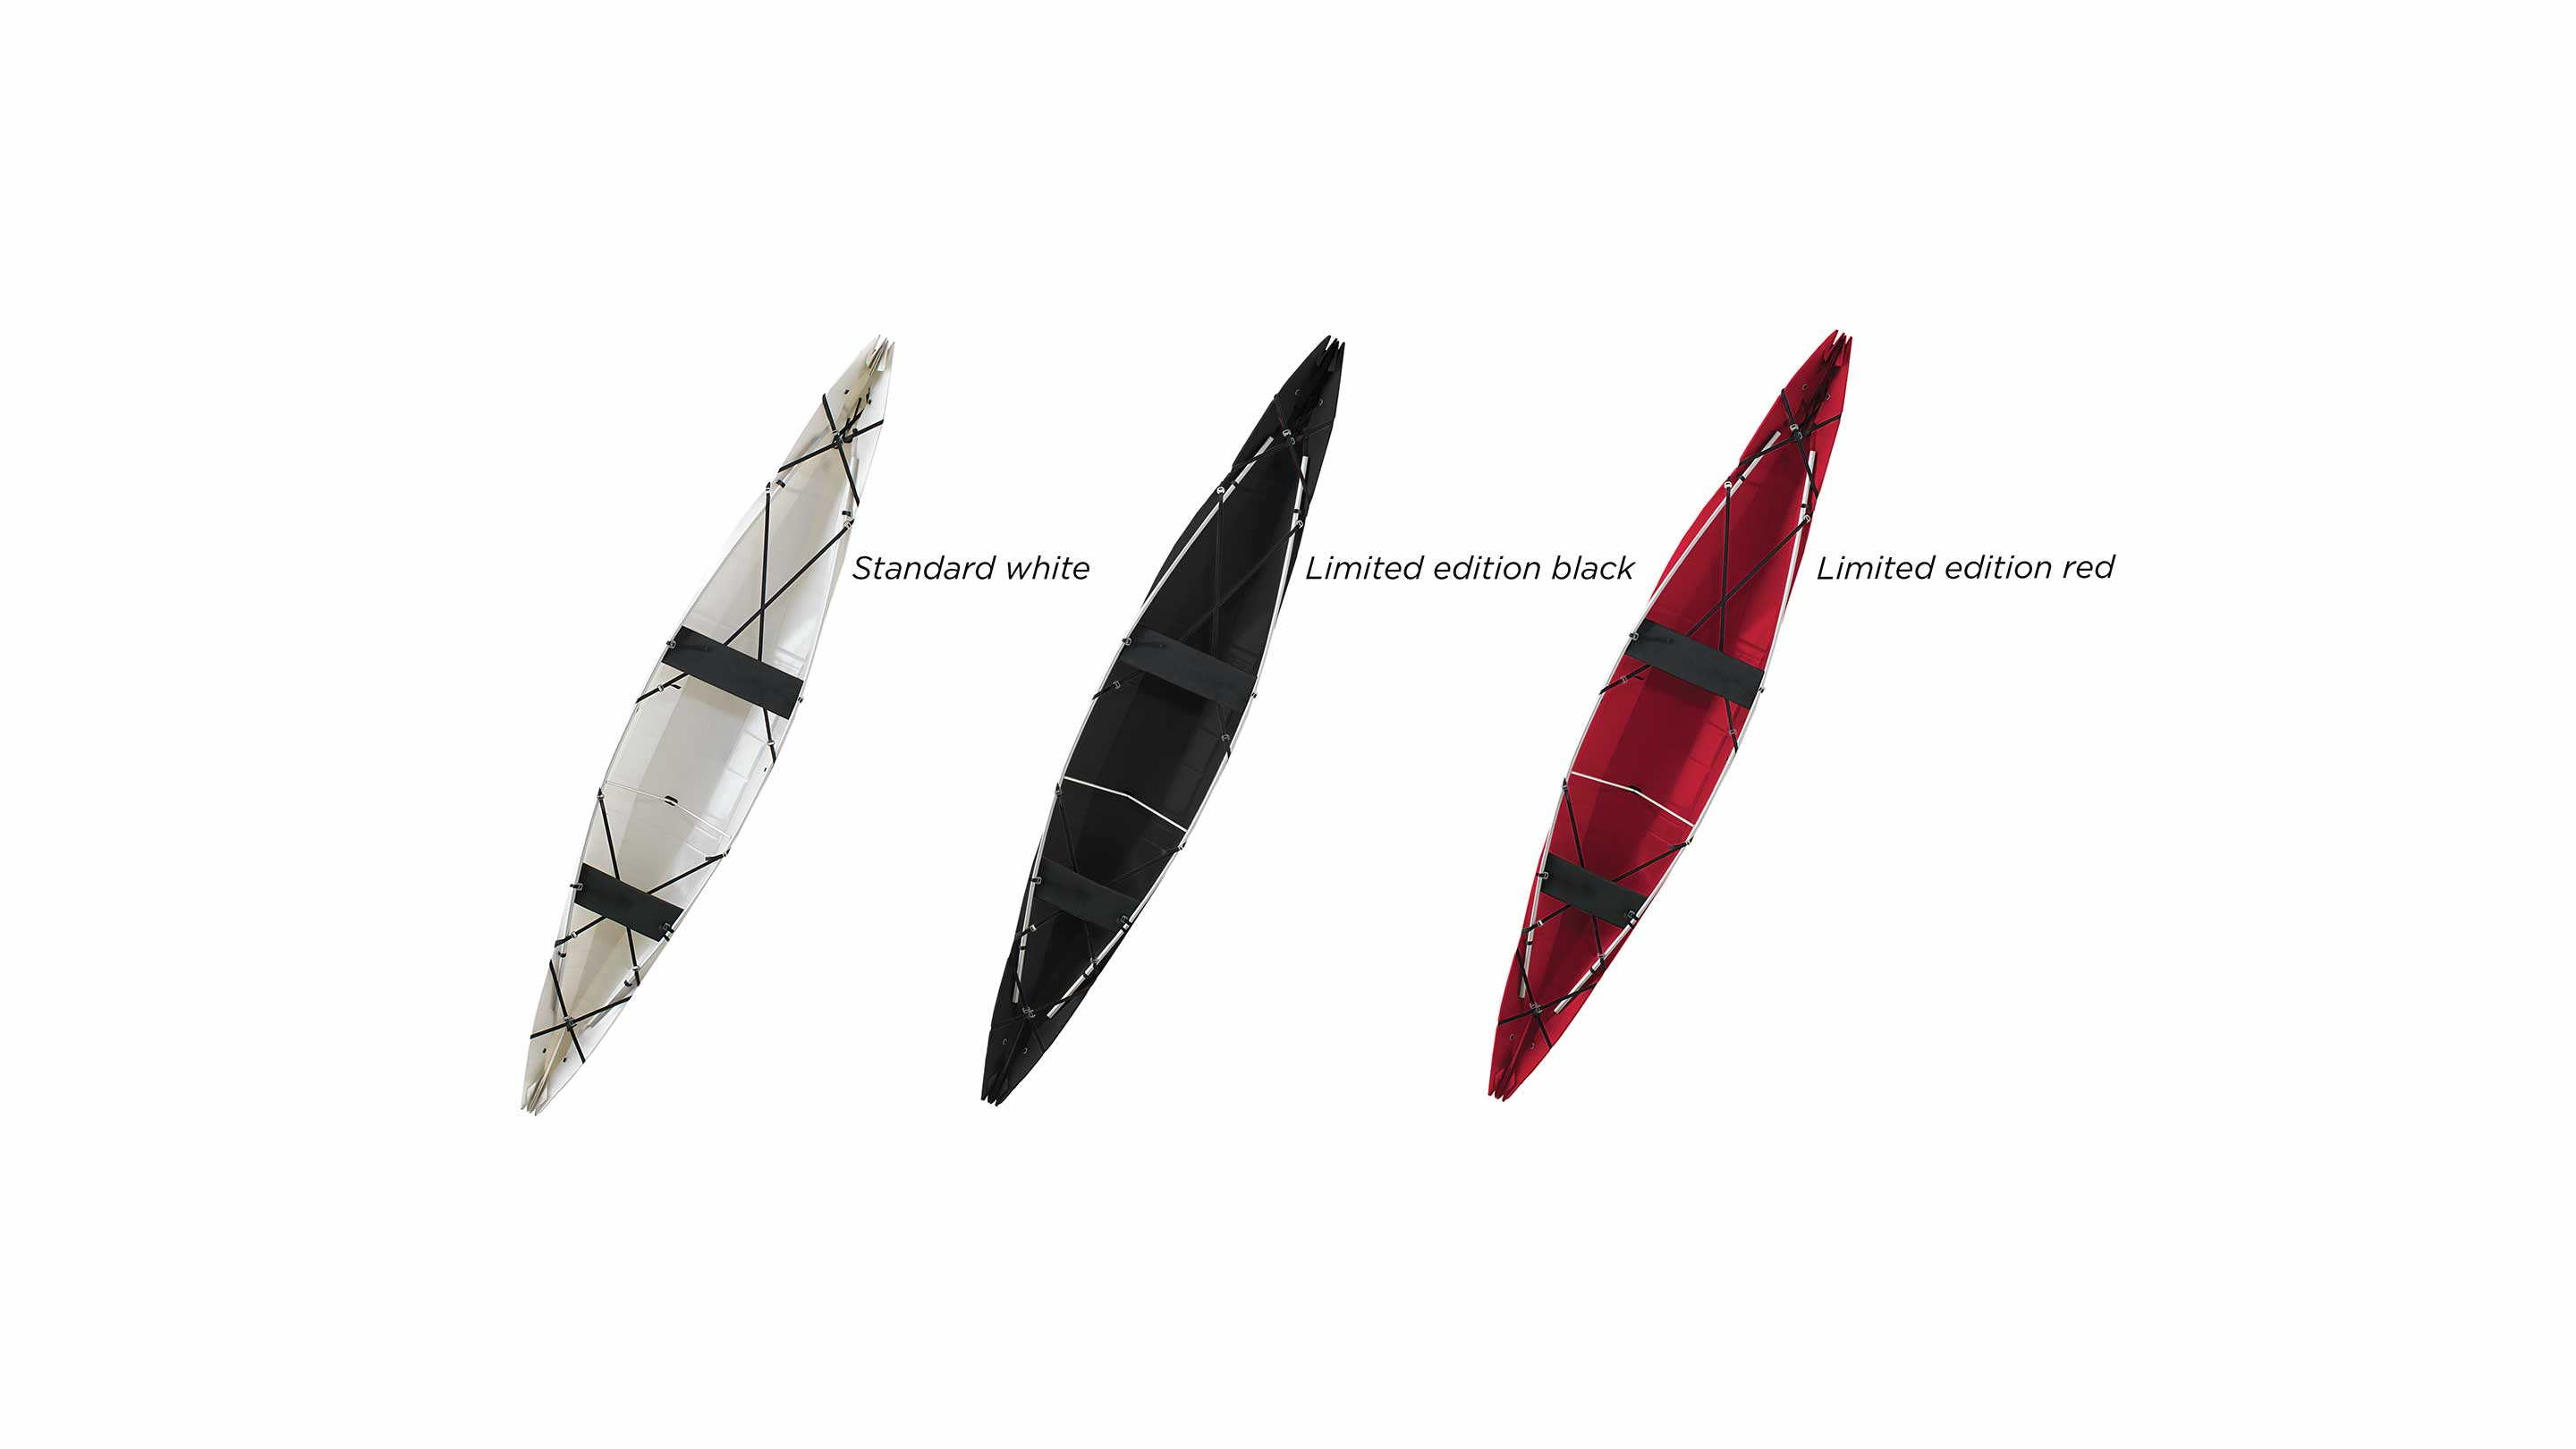 onak foldable canoe in 3 colors